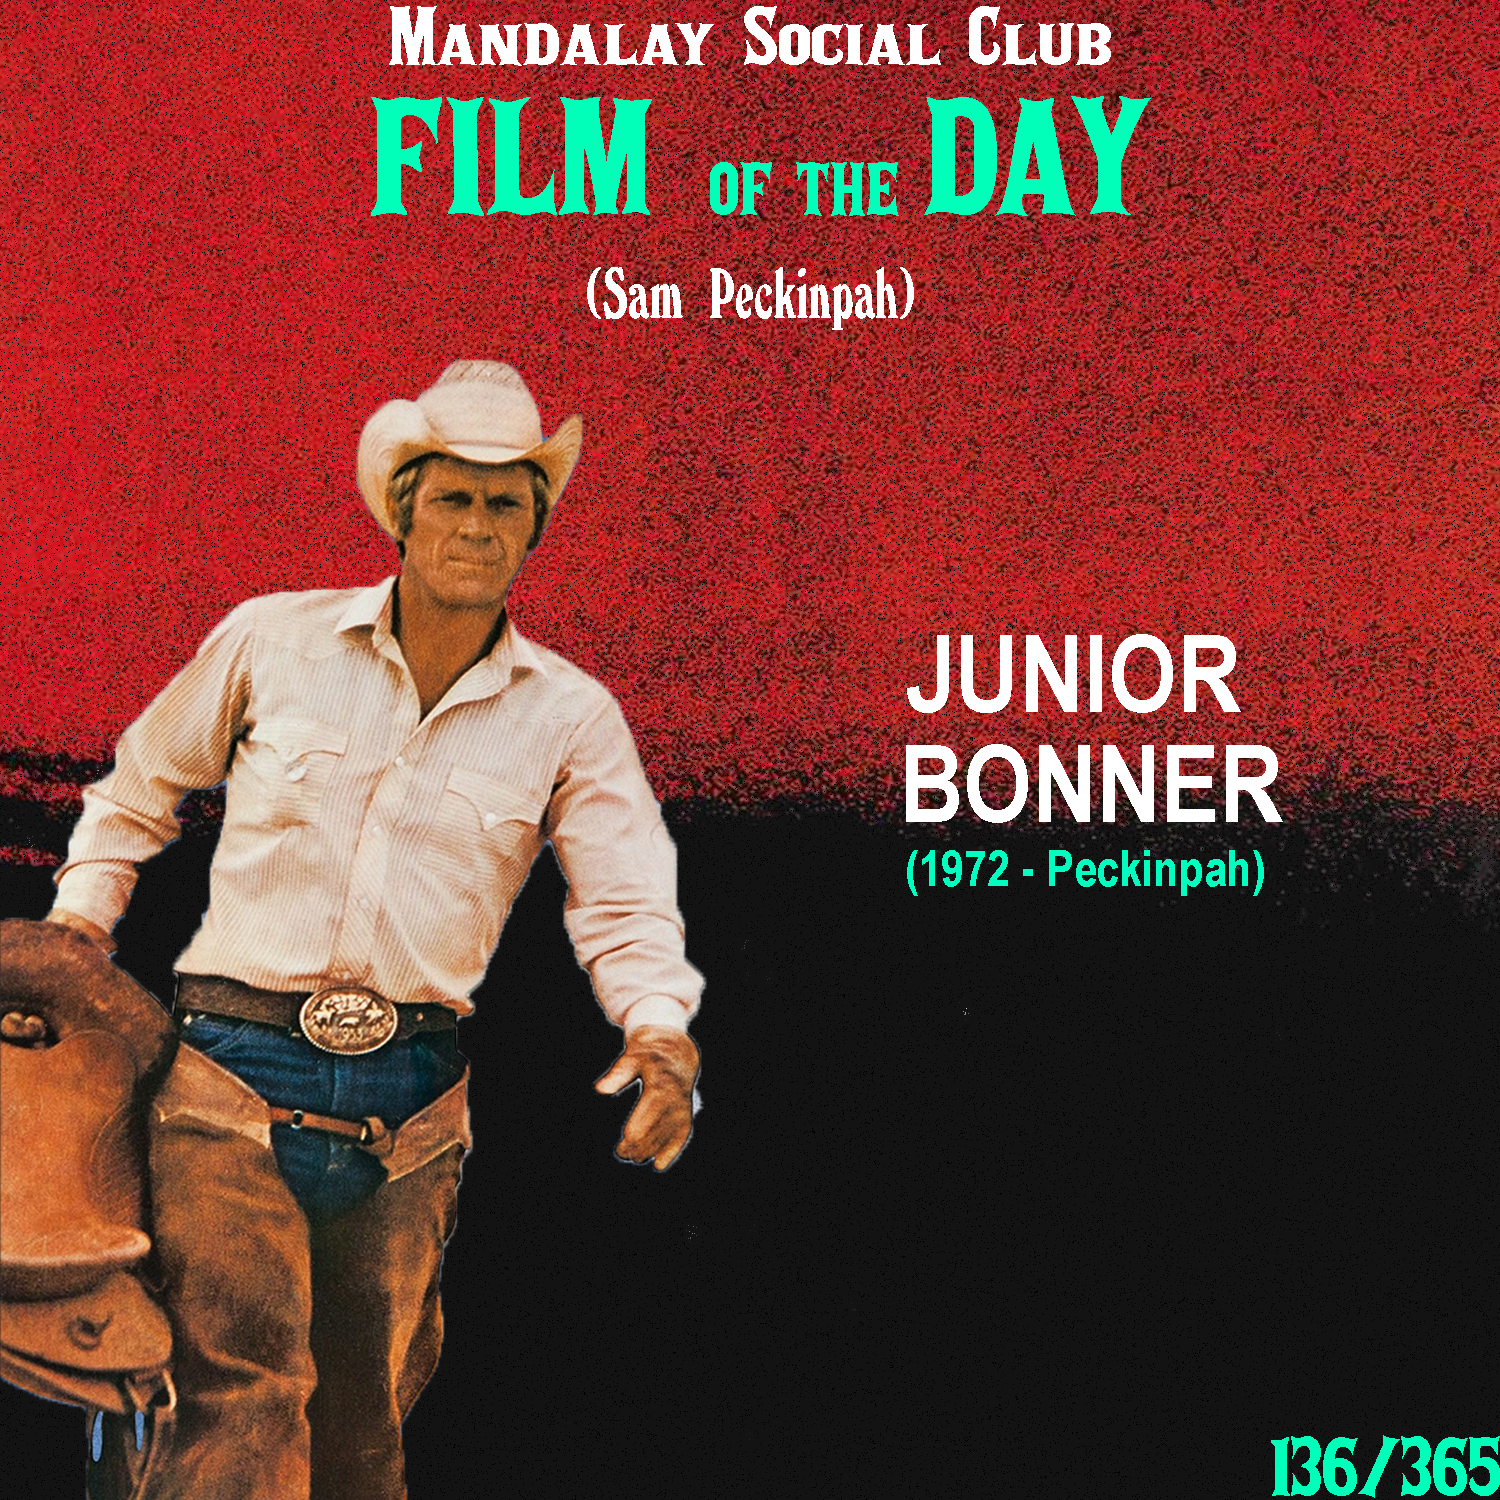 JUNIOR BONNER     (dir. Sam Peckinpah)   Now, if we hadn't have already discussed  Straw Dogs  during out 70's British Cinema series, we would have placed it right here in our Peckinpah retrospective. However,  Junior Bonner  started production just weeks after Sam Peckinpah finished  Straw Dogs , so we figure this is a good substitute for this spot in the list.   Junior Bonner  follows Steve McQueen as JR Bonner, a bull rider. He's been away for sometime, but he returns back to his hometown of Prescott, AZ to re-connect with his family and compete in the annual Independence Day Rodeo.   Junior Bonner  deserves to be on this list for a few reasons. For one, like  Cable Hogue , it shows Peckinpah in an arena that isn't predicated by it's violence. It also shows Steve McQueen in one of his best performance. Unfortunately, this film has nowhere near the excitement or intrigue of any of Peckinpah's other films that I've seen. Peckinpah approached this film with the intent of creating something that didn't rely on violence and he does a great job of directing the film, but it didn't have the comedy or intrigue that  The Ballad of Cable Hogue  had to rely on in place of violence. Unfortunately in this case, the story itself does absolutely nothing for me. I don't think it would matter who directed this, it wouldn't have been a W anyway.    2.5/5     WATCH: YouTube (FREE)